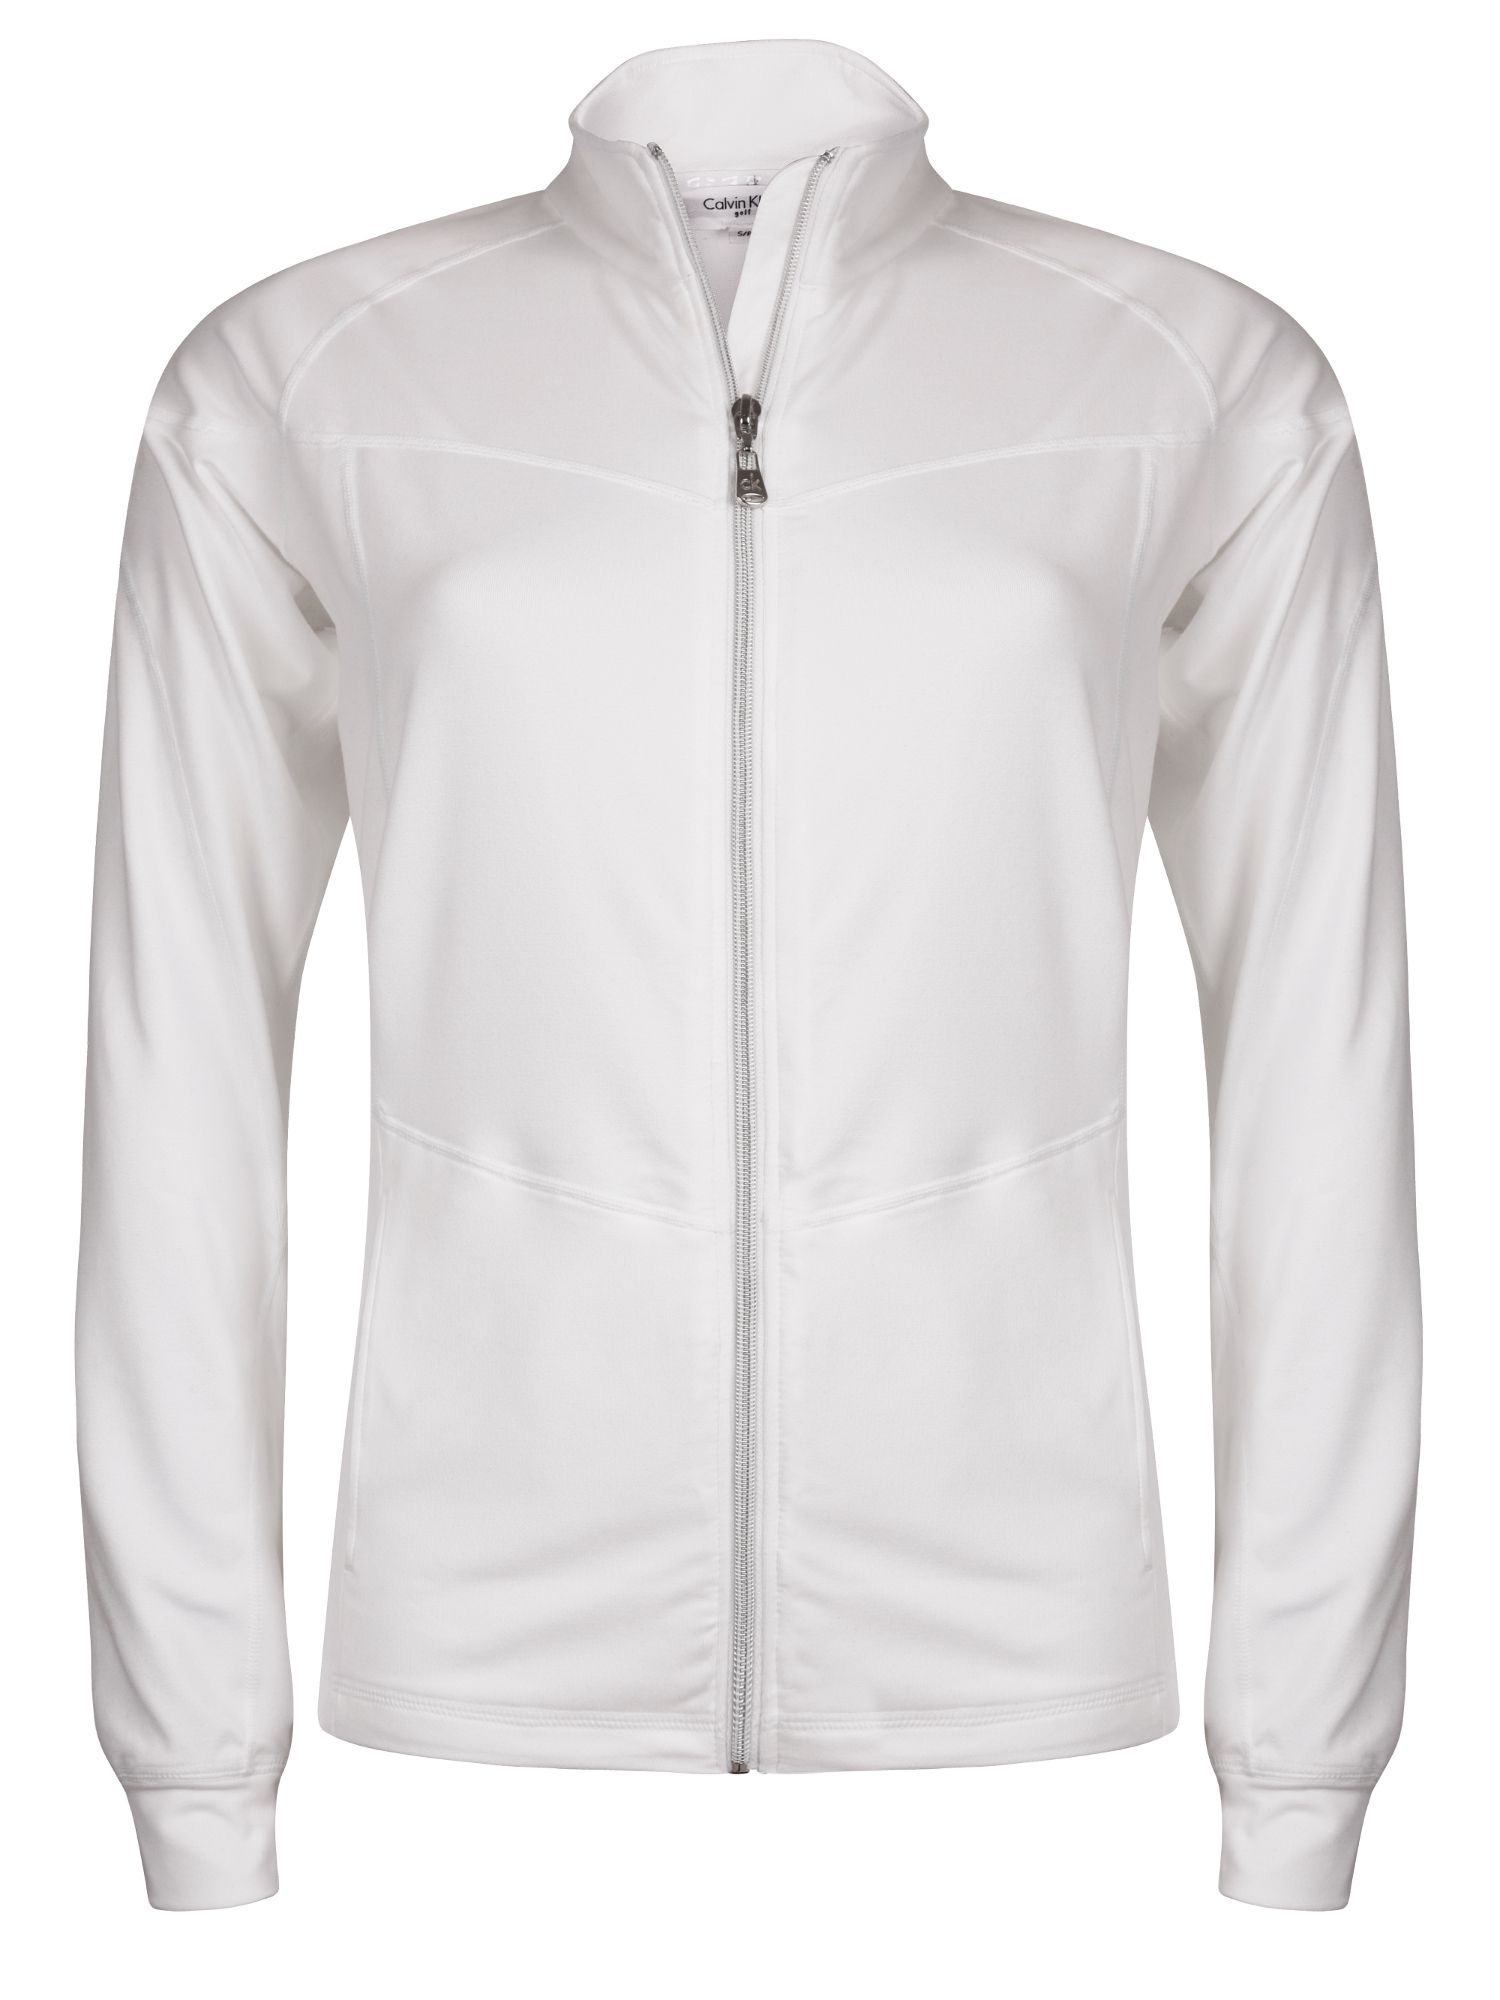 Thermo tech jacket